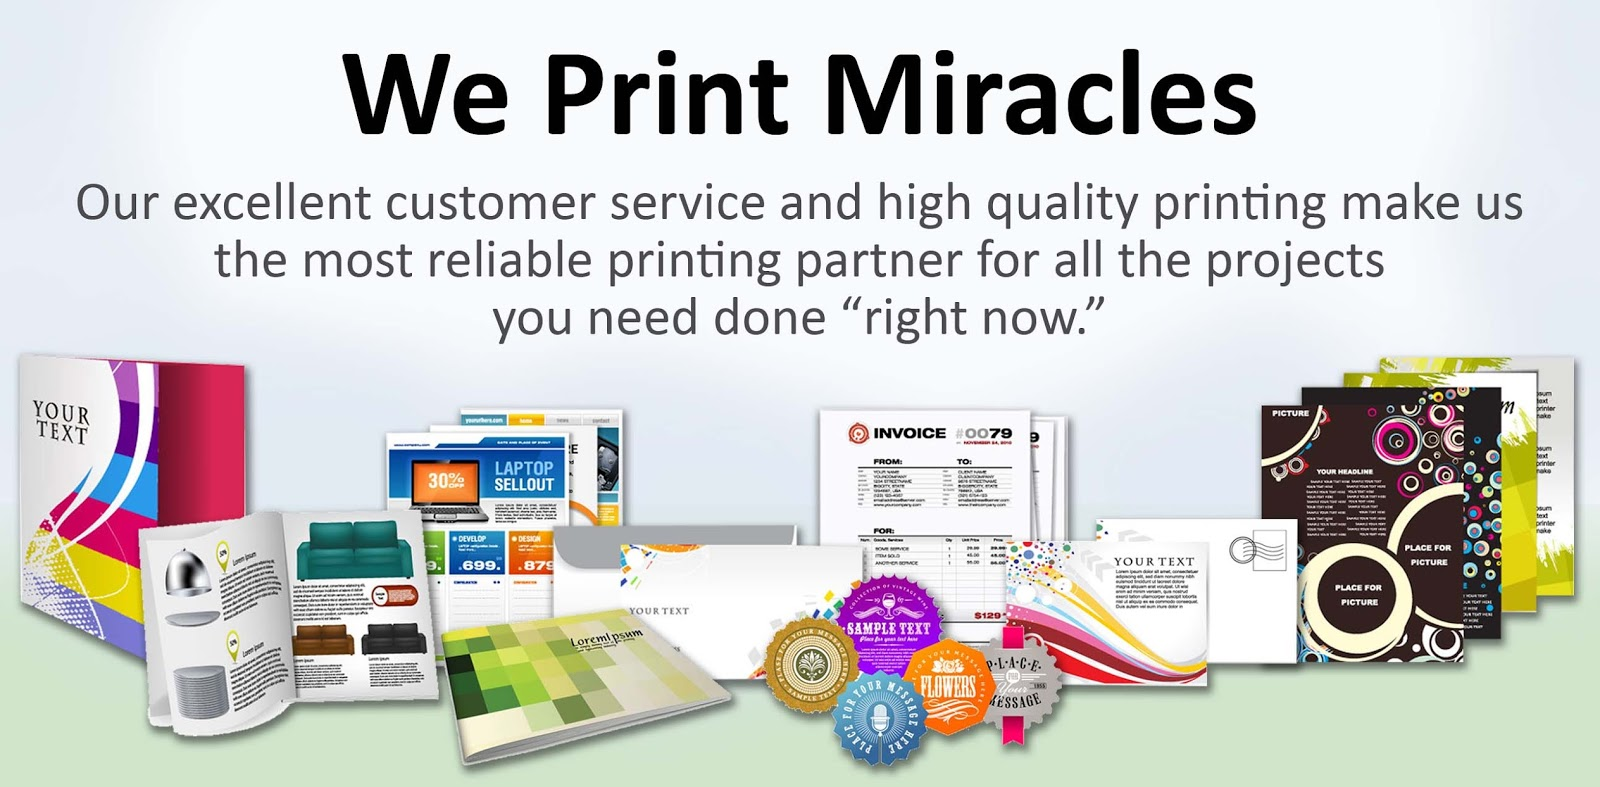 Luxury business cards printing gloucester leaflet distribution in attractive leaflet printing services gloucester reheart Image collections